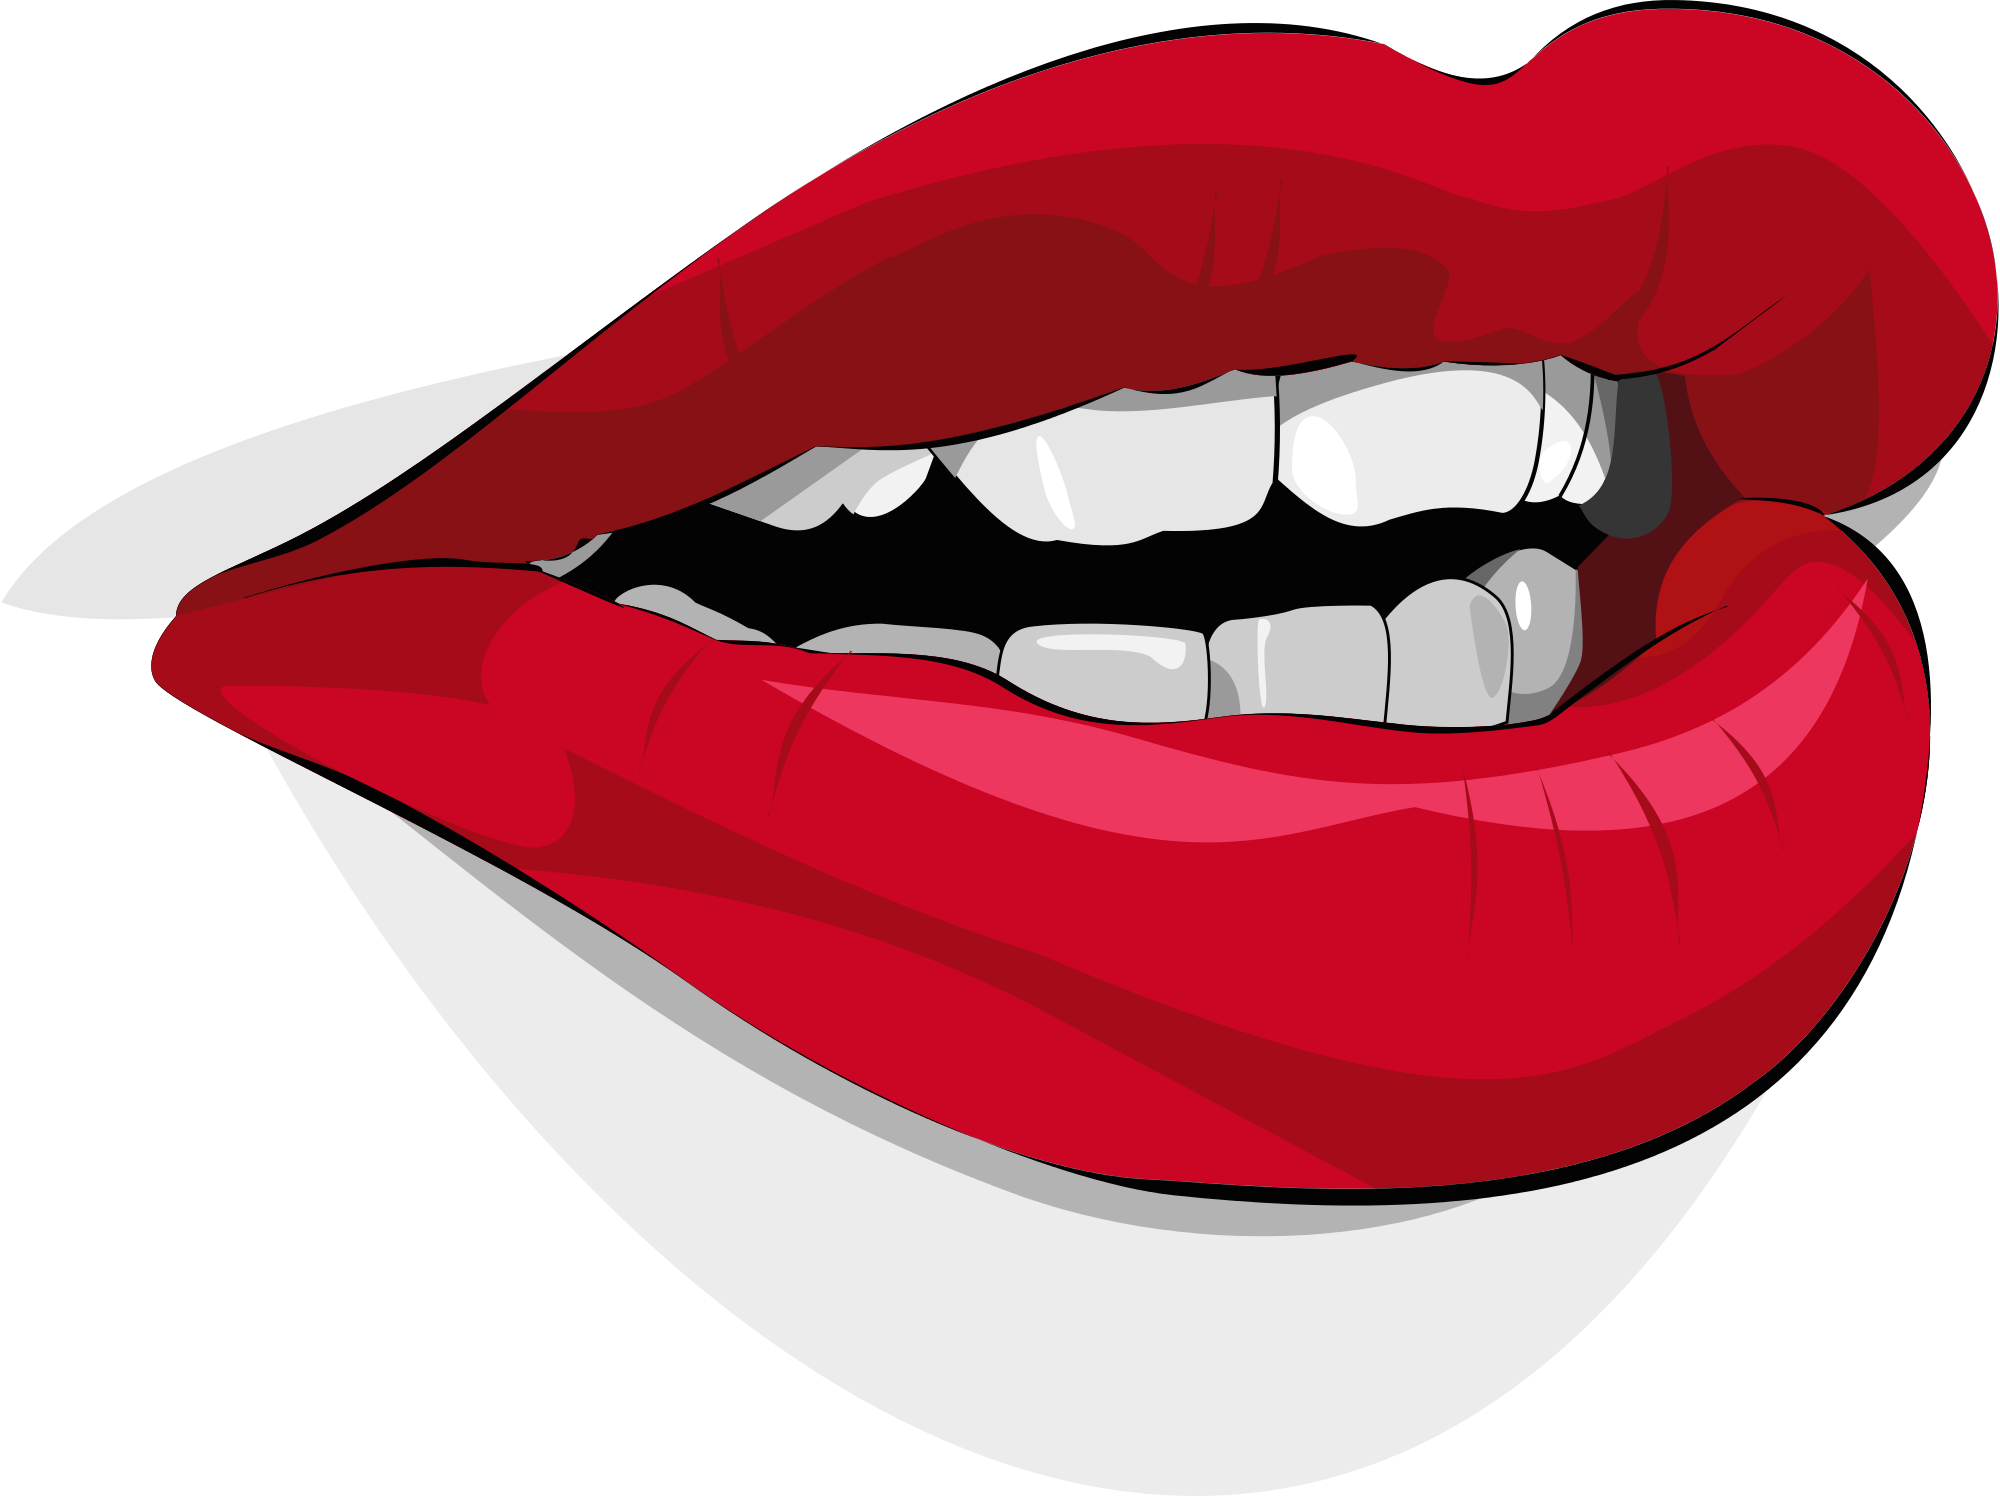 Talking mouth png. File xeolhades svg wikimedia